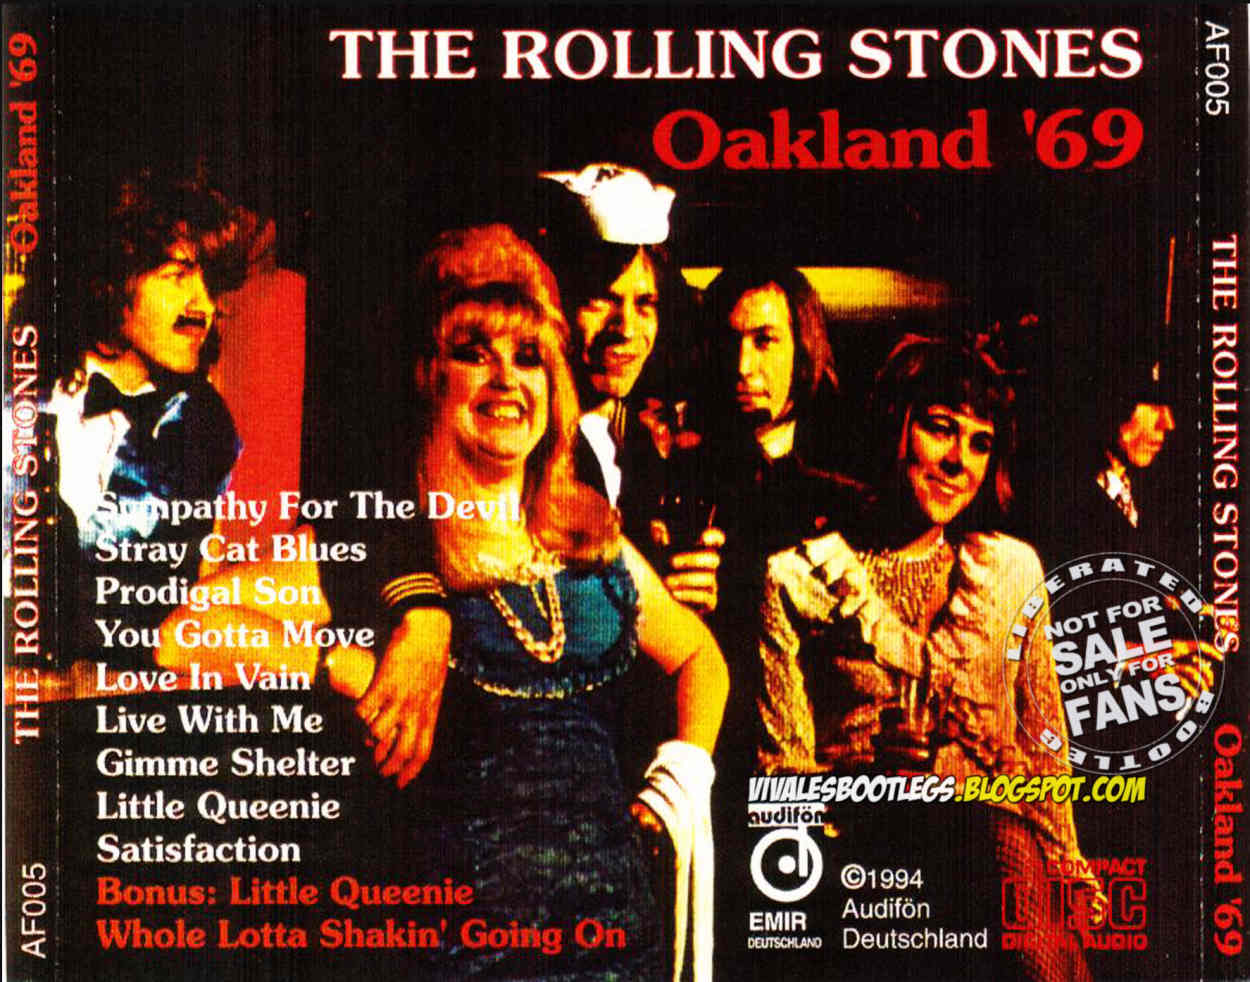 The Rolling Stones: Oakland '69  Alameda County Coliseum, Oakland